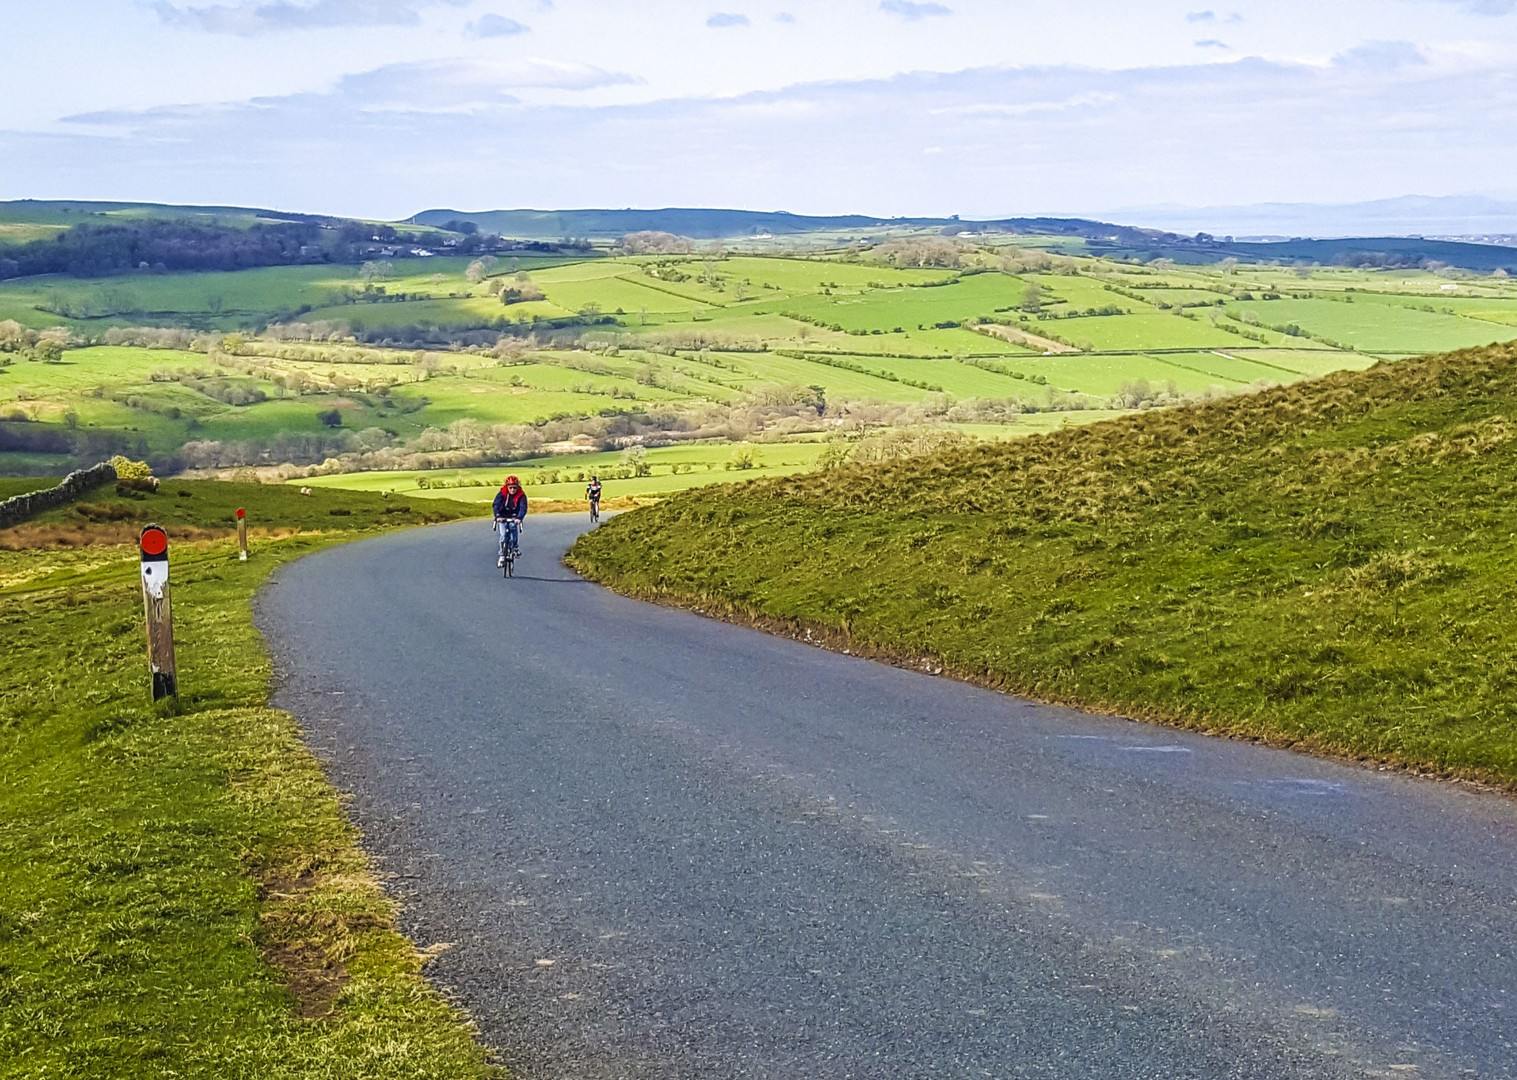 rolling-hills-british-countryside-lake-district-cycling-holiday-roads-skedaddle.jpg - UK - Lake District - Derwent Water - Self-Guided Leisure Cycling Holiday - Leisure Cycling